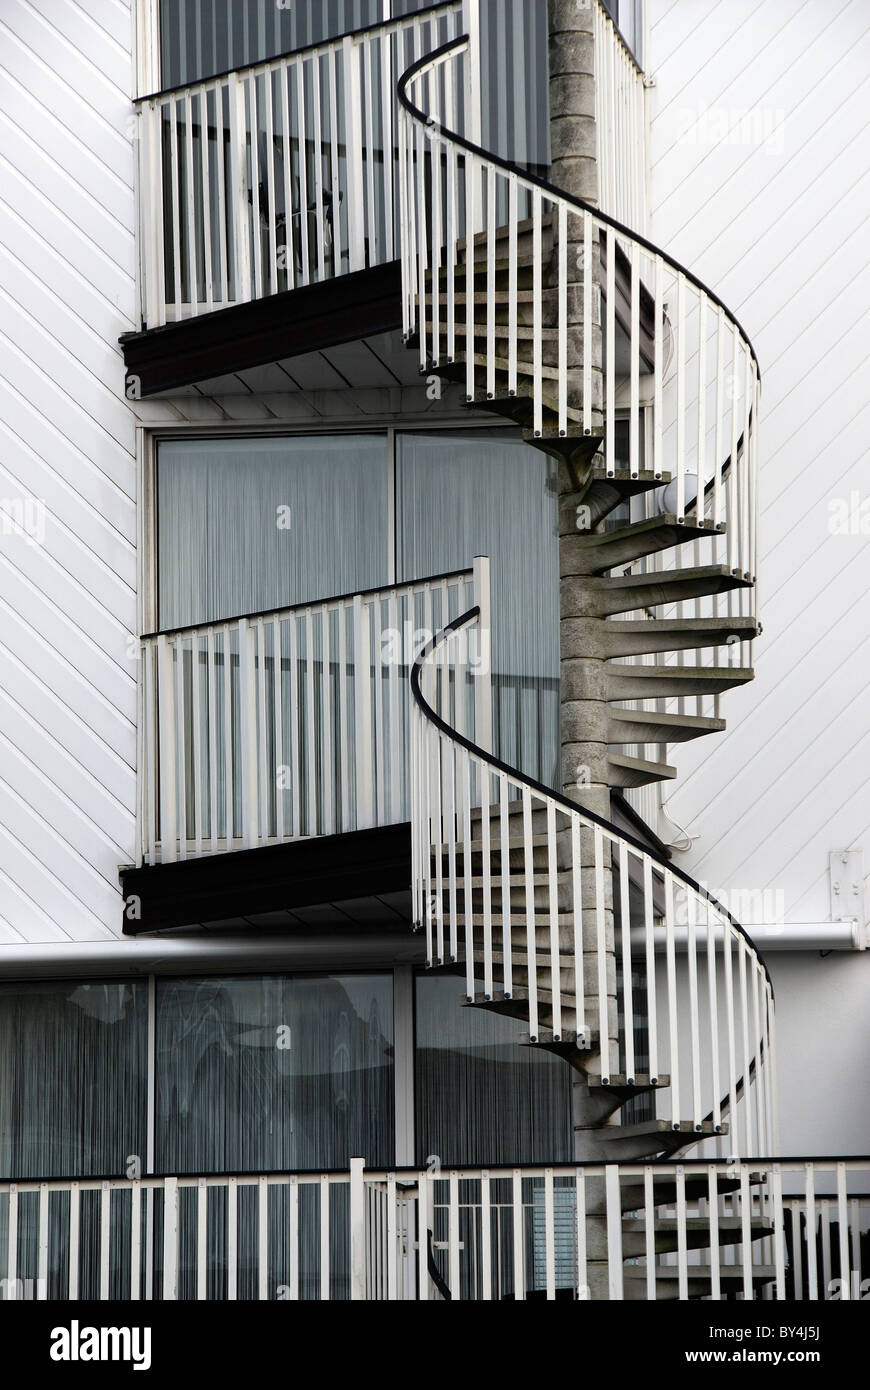 External Spiral Staircase To Block Of Flats. Christchurch, UK December 2009    Stock Image